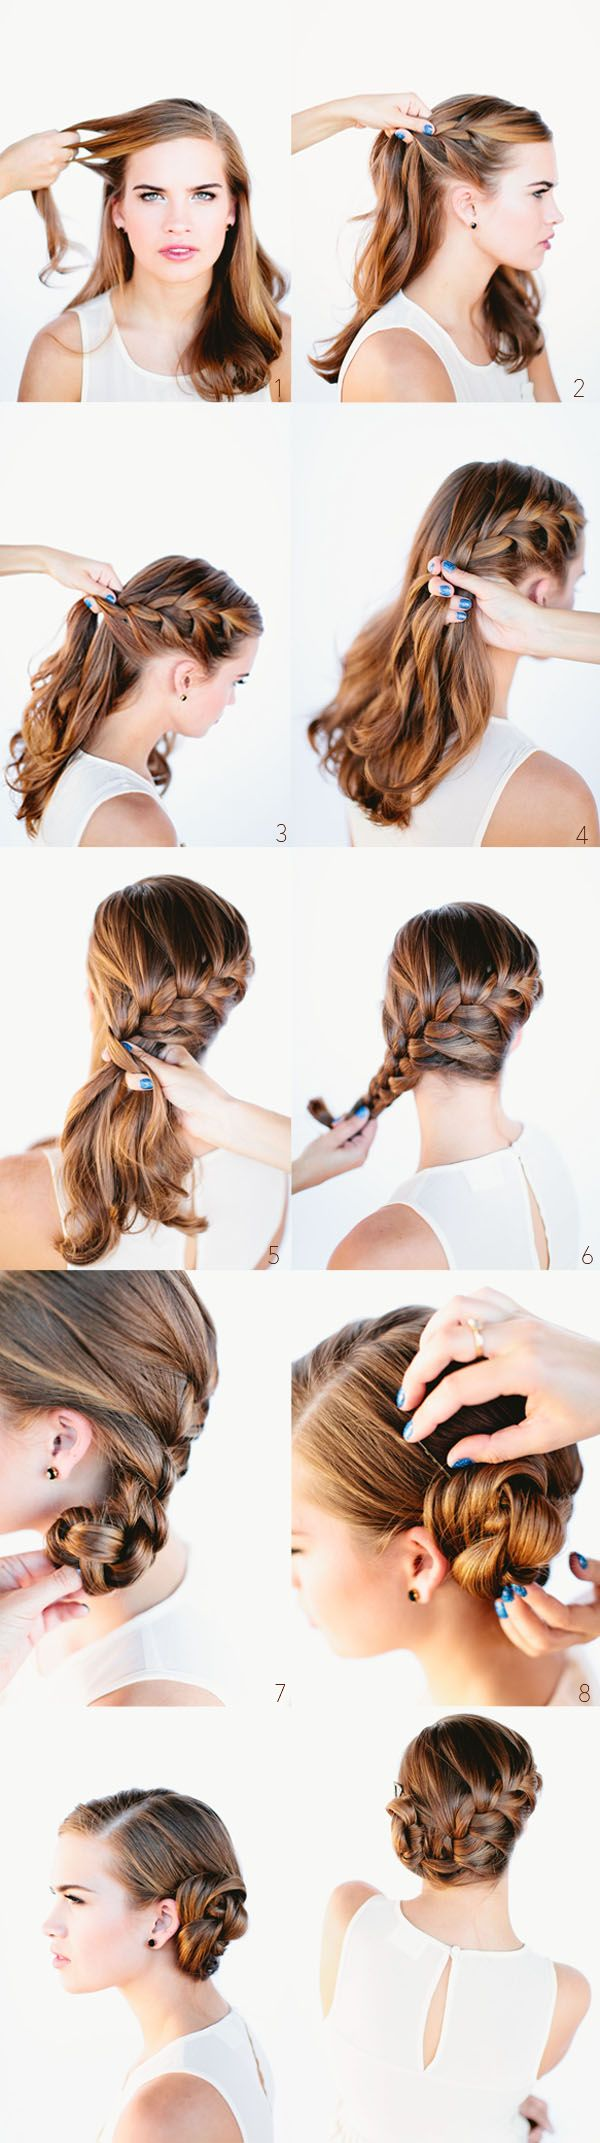 19 best Hair images on Pinterest | Make up looks, Hair makeup and ...